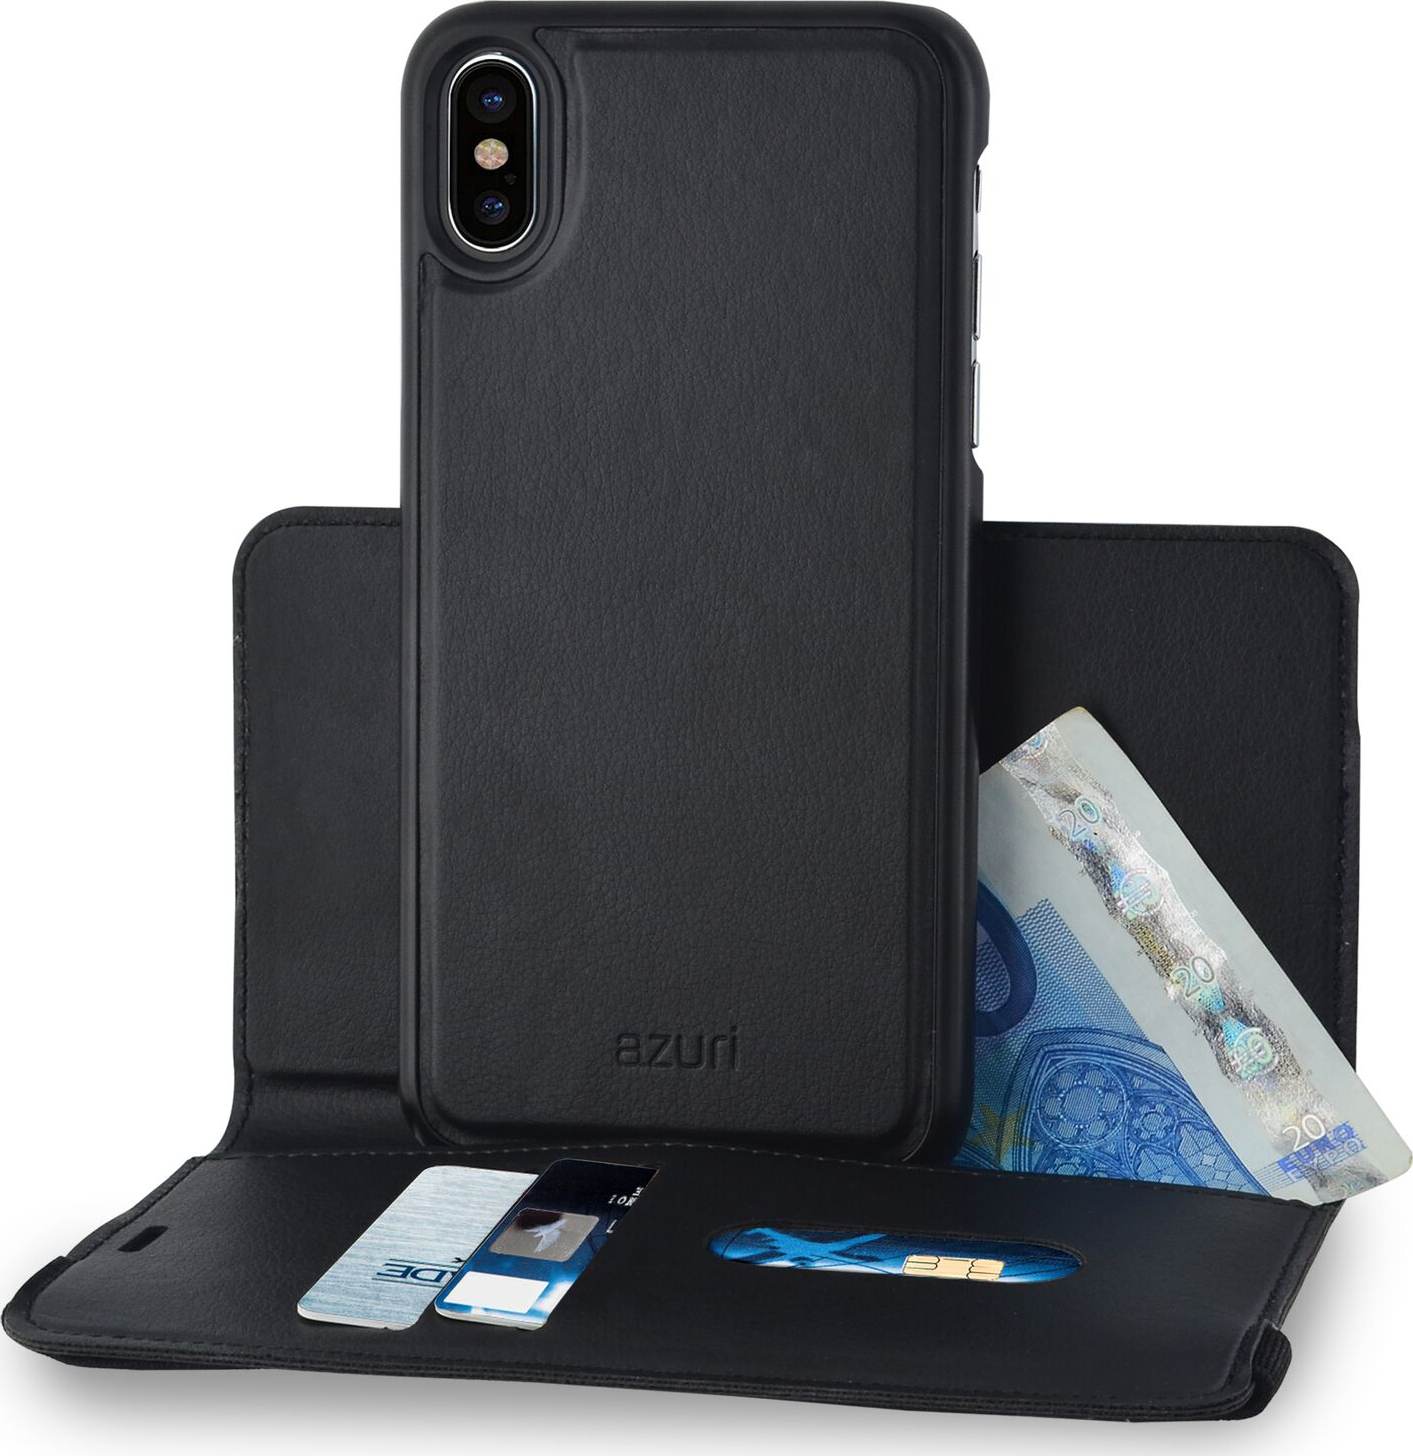 size 40 38134 2dc89 Azuri wallet case with removable magnetic cover - black - for Apple ...